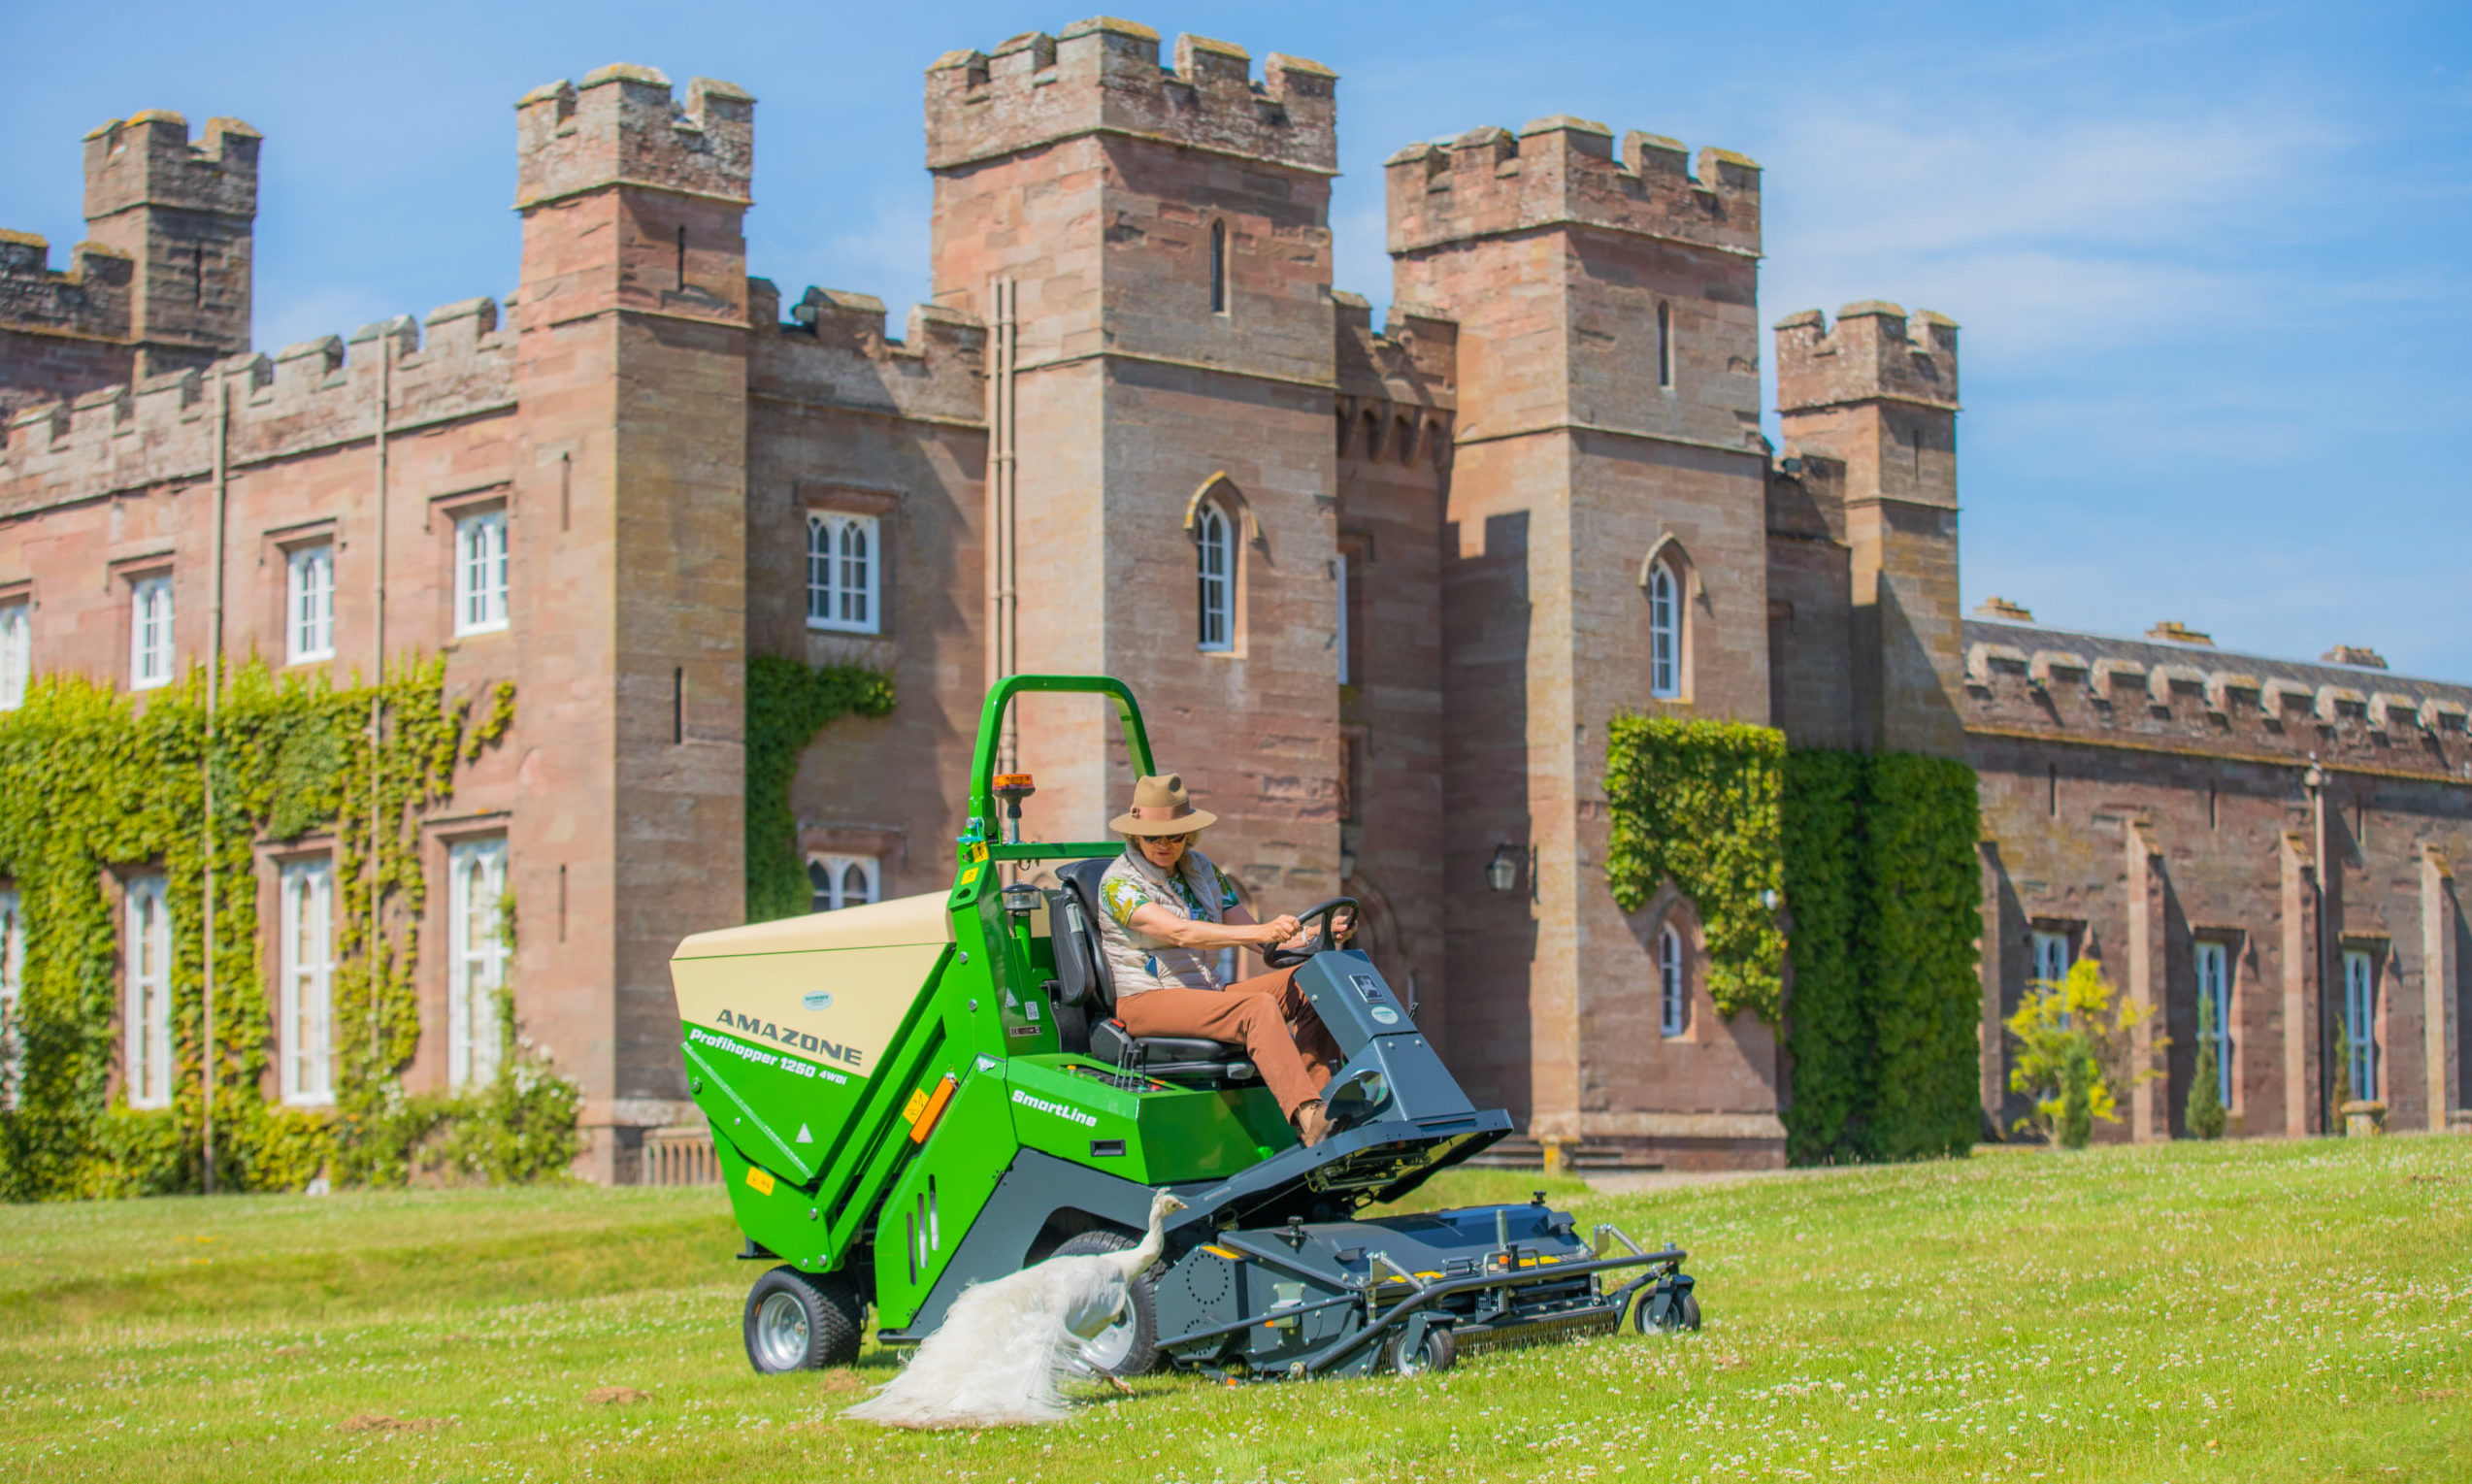 Lady Mansfield mowing the grass in preparation for the reopening of Scone Palace.